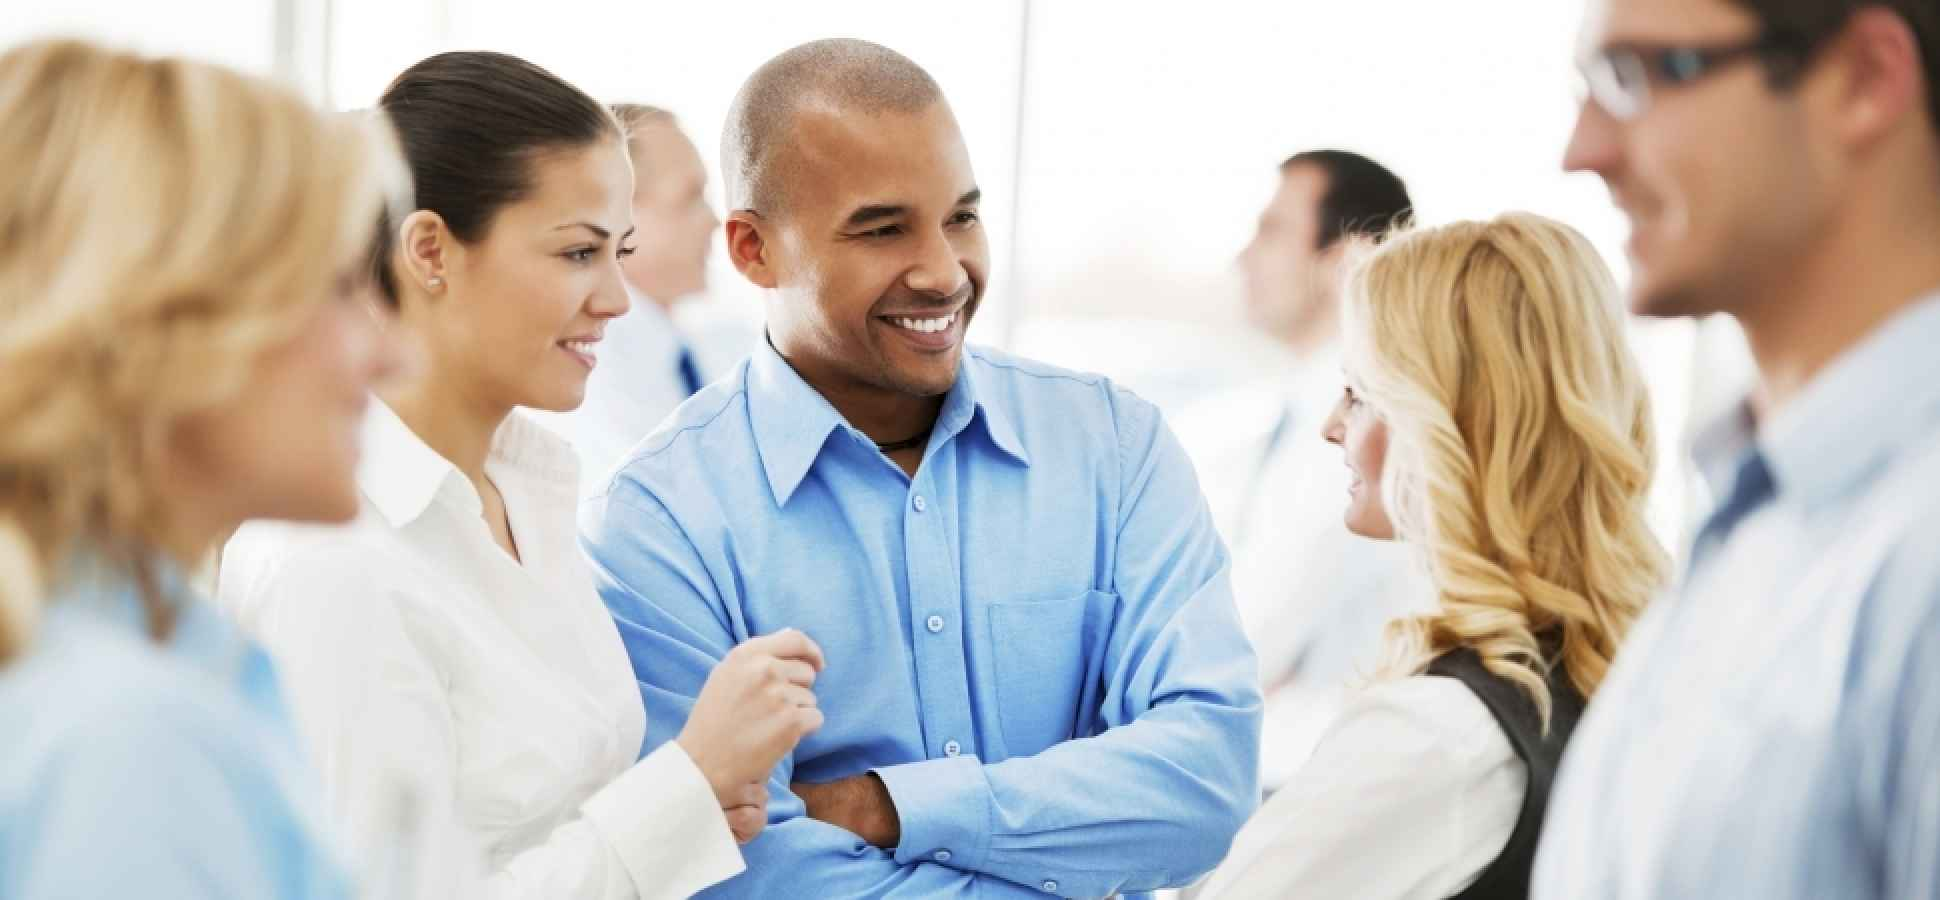 9 Secrets to Effective Networking, Even If You're a Nerd